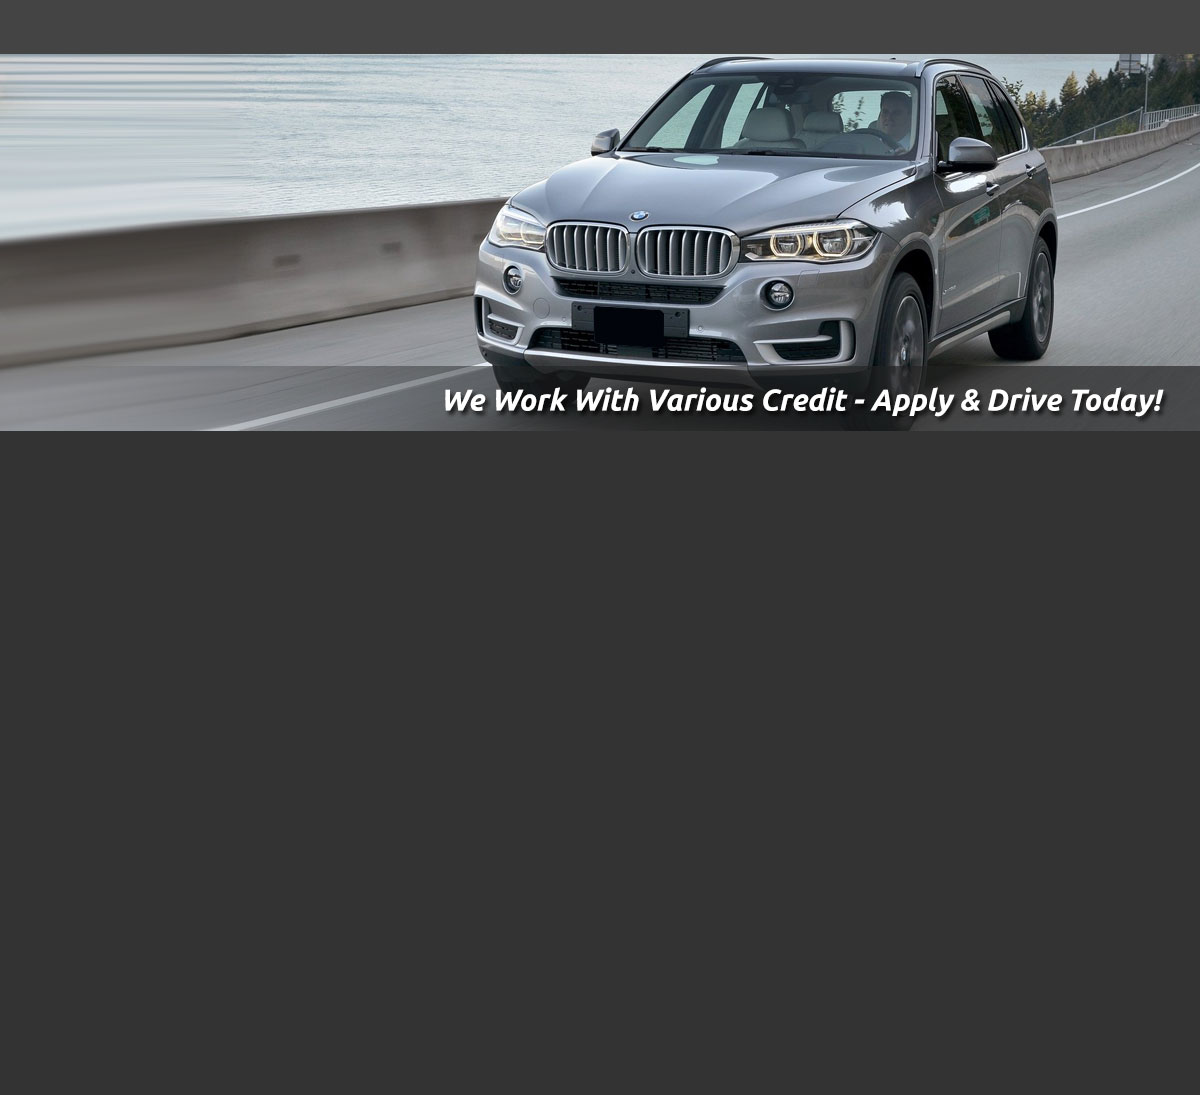 Bmw Used Cars For Sale Euless DFW BIMMER AUTO SALES